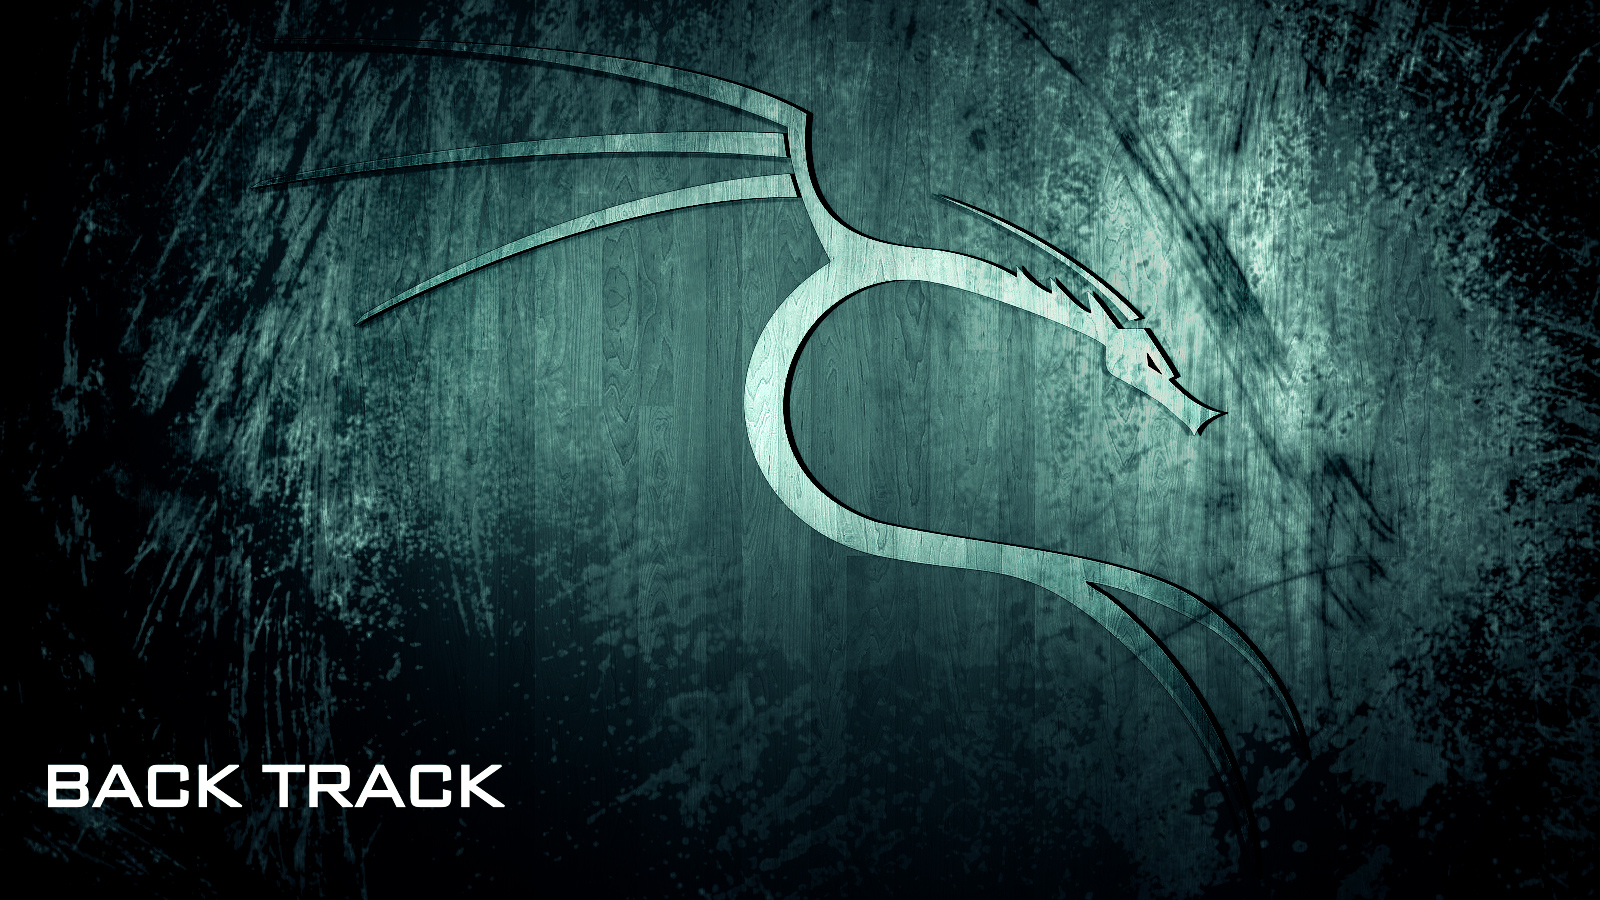 trololo blogg: Backtrack 5 Wallpaper Hd